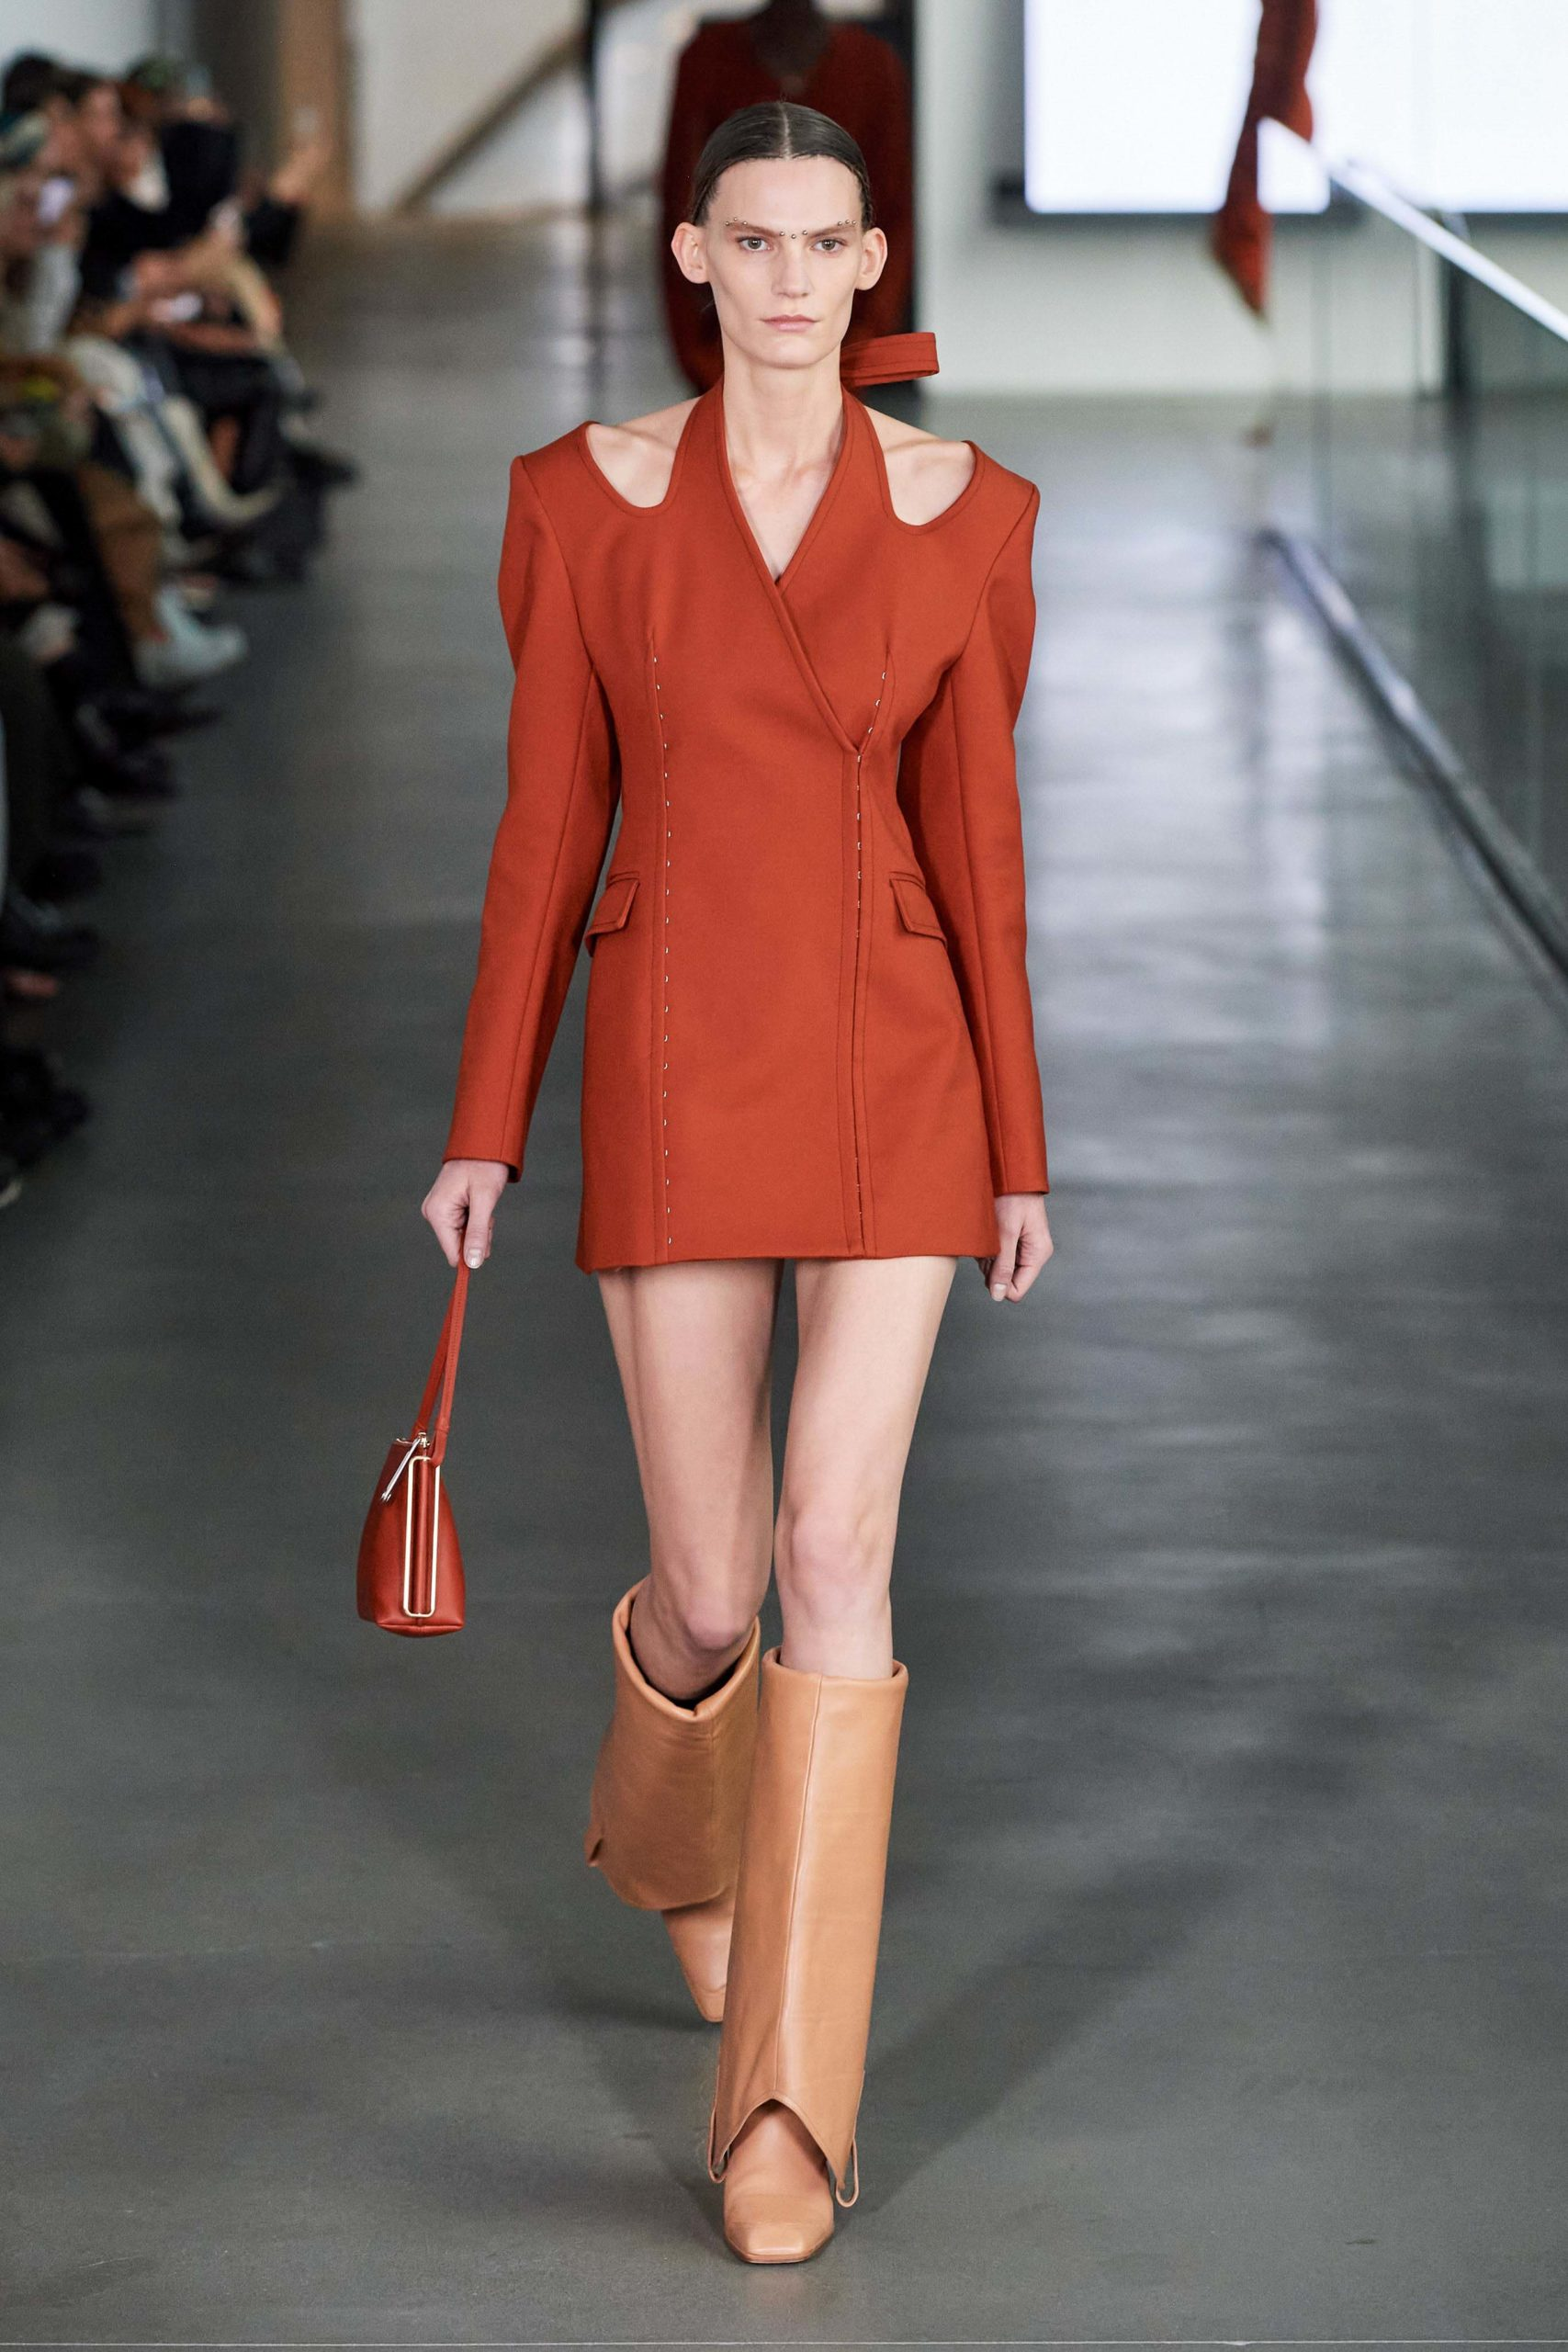 Dion Lee Fall 2020 trends runway report Ready To Wear Vogue cut out shoulder